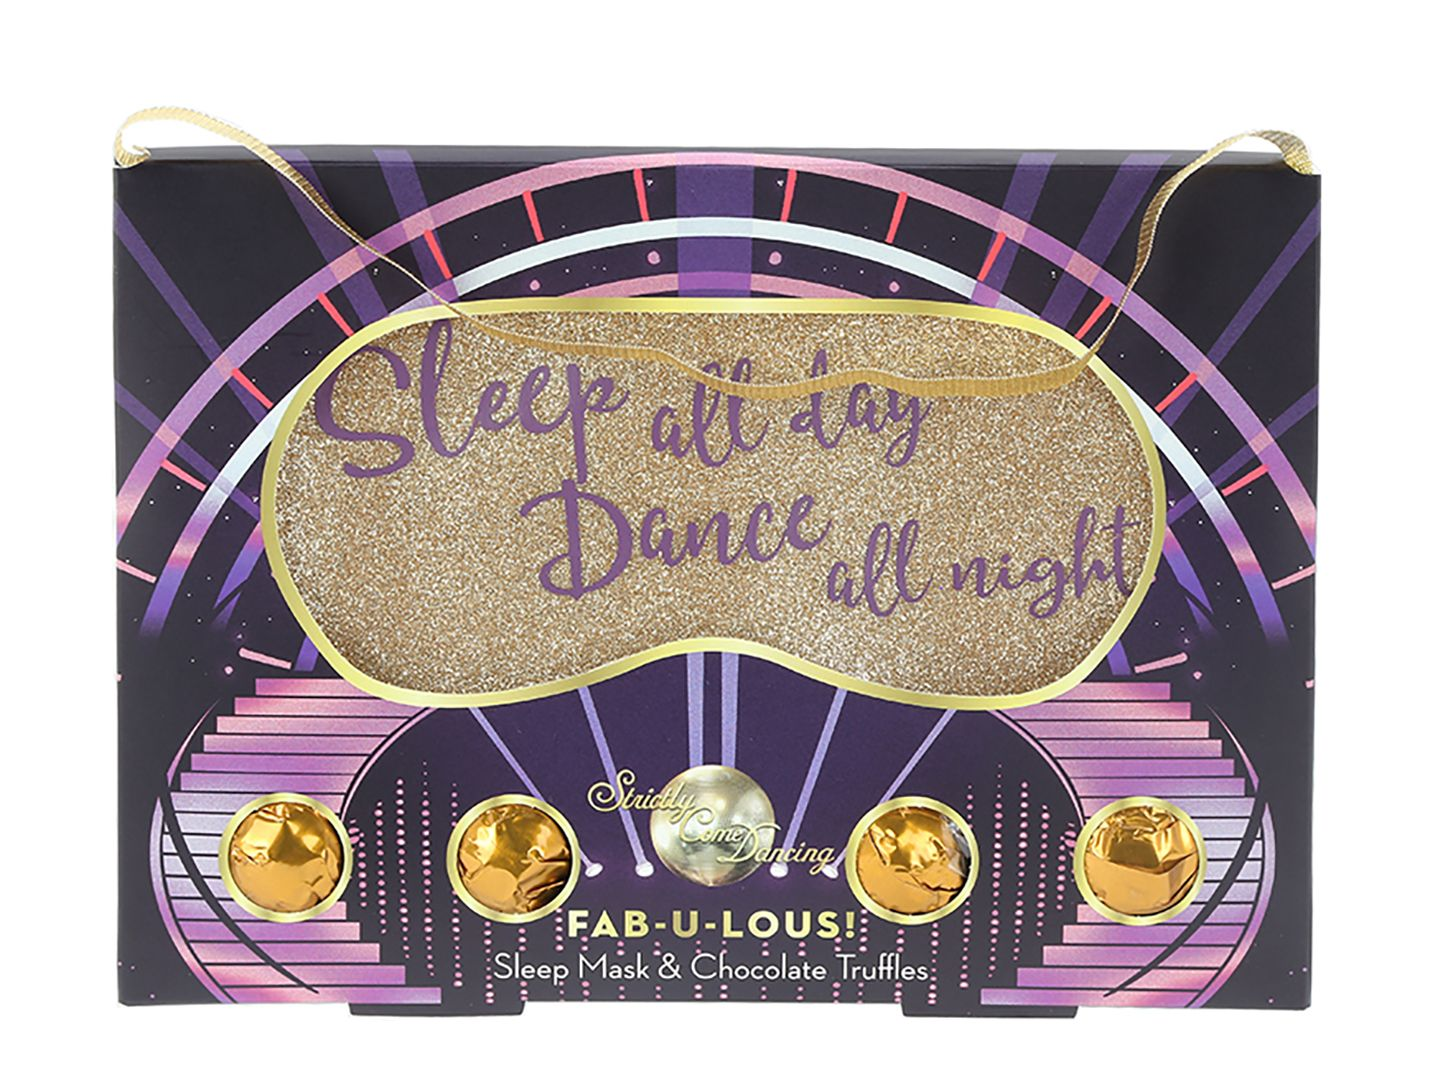 Official 2019 Strictly Come Dancing Square Calendar Gift Wall Hanging